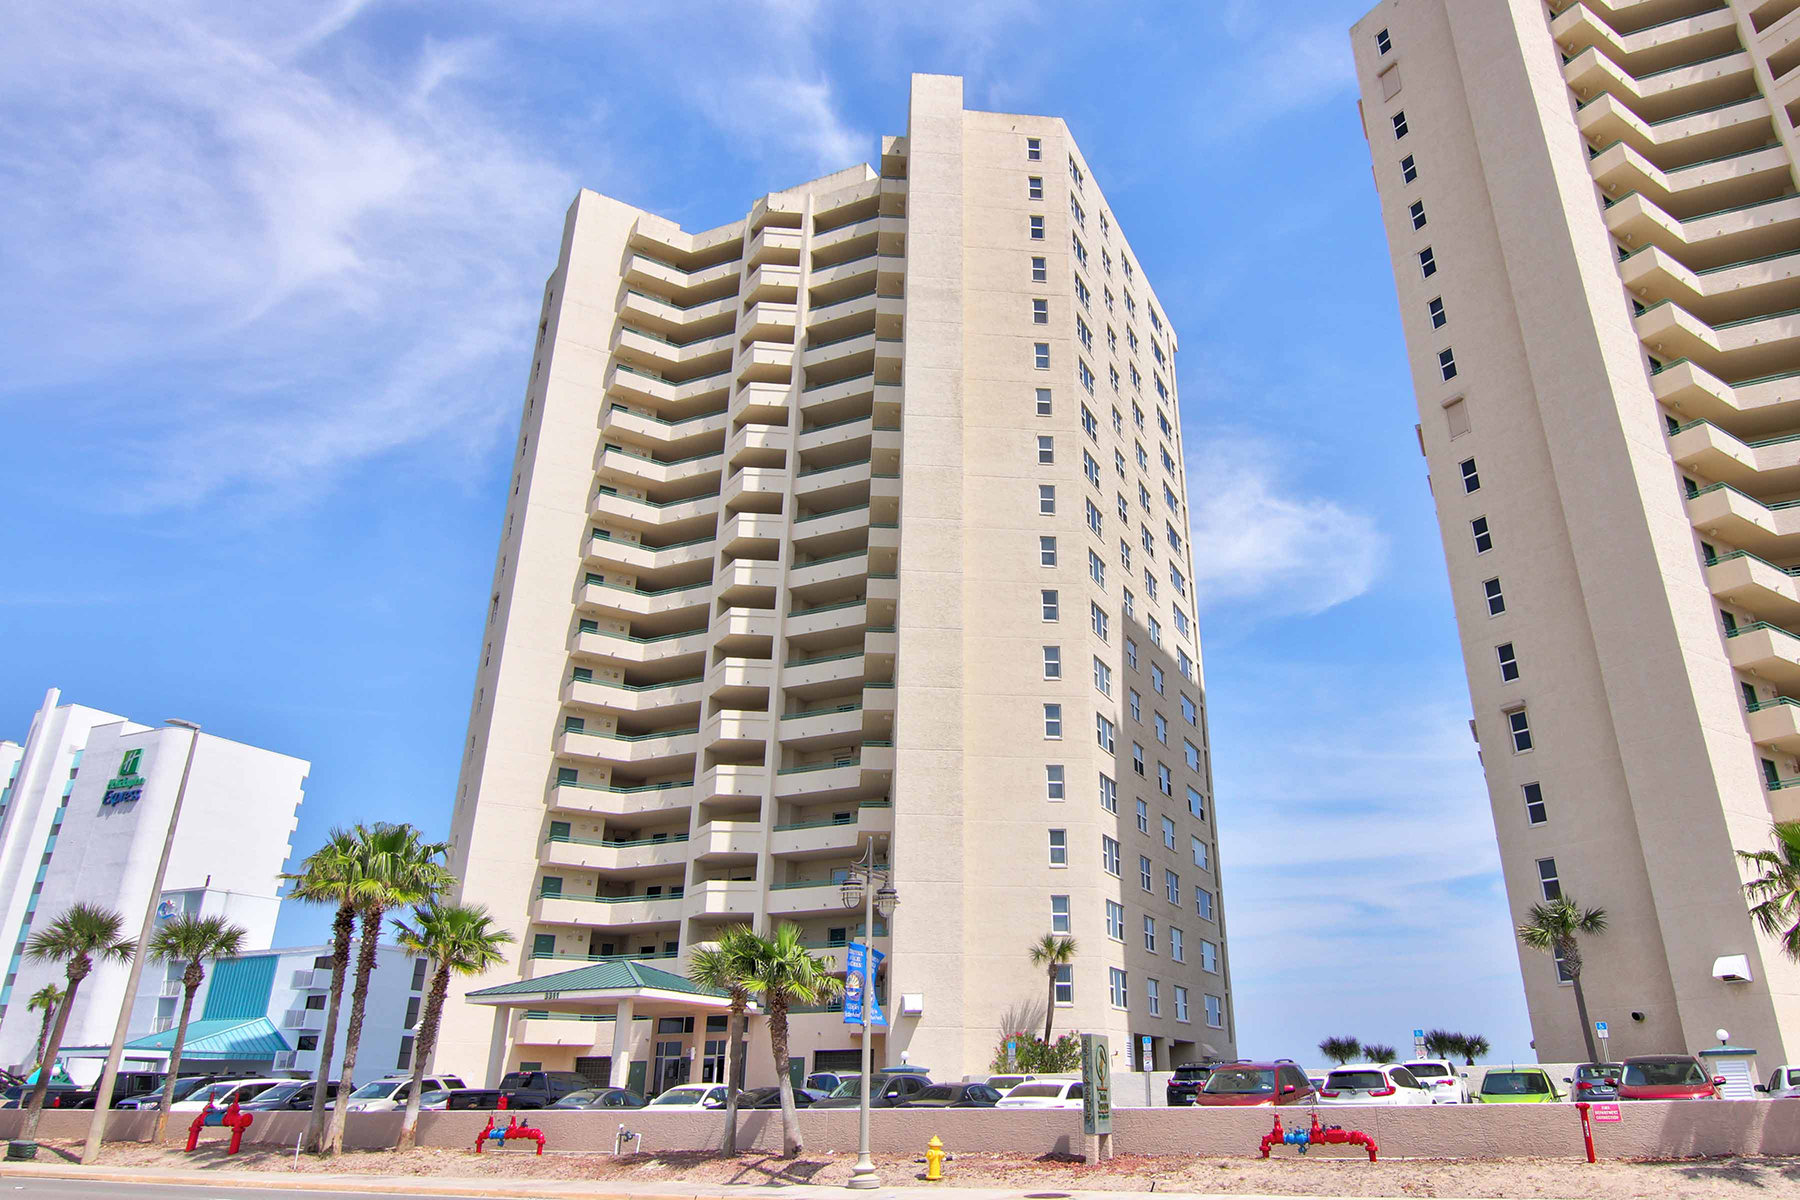 condominiums for Active at 3311 ATLANTIC 3311 S Atlantic Ave , 802 Daytona Beach Shores, Florida 32118 United States